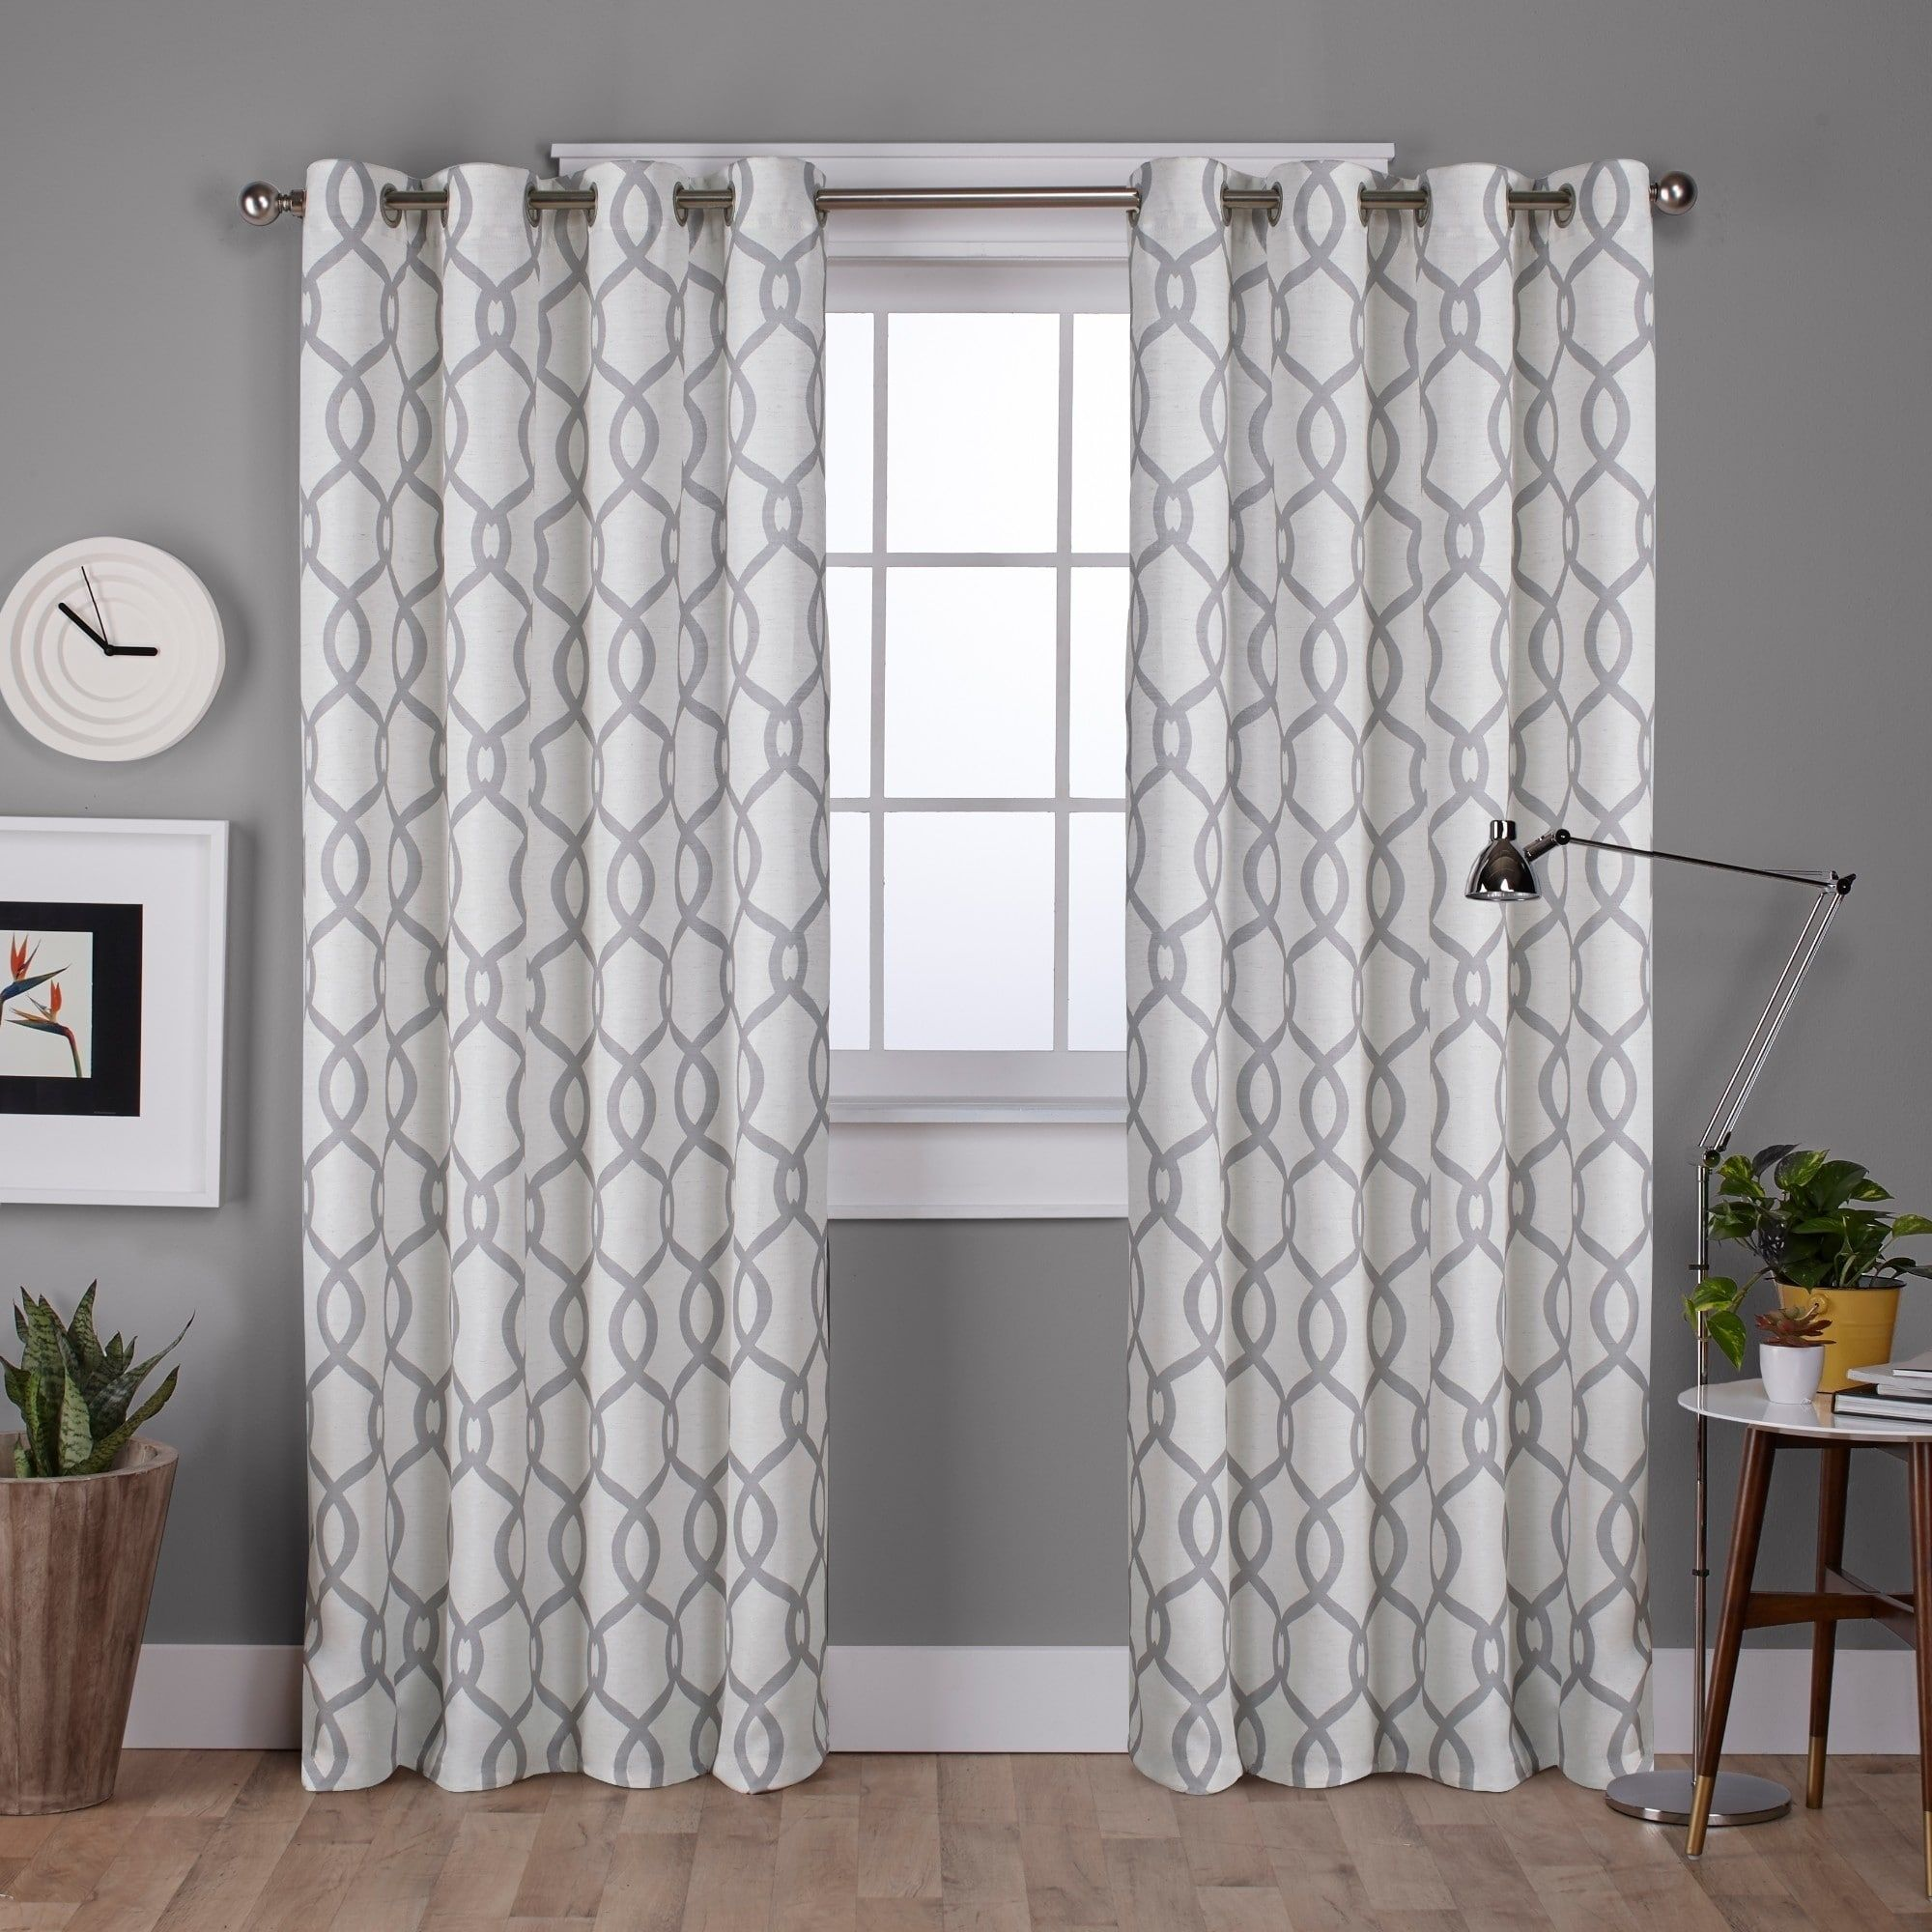 Ati home kochi linen blend window curtain panel pair with grommet